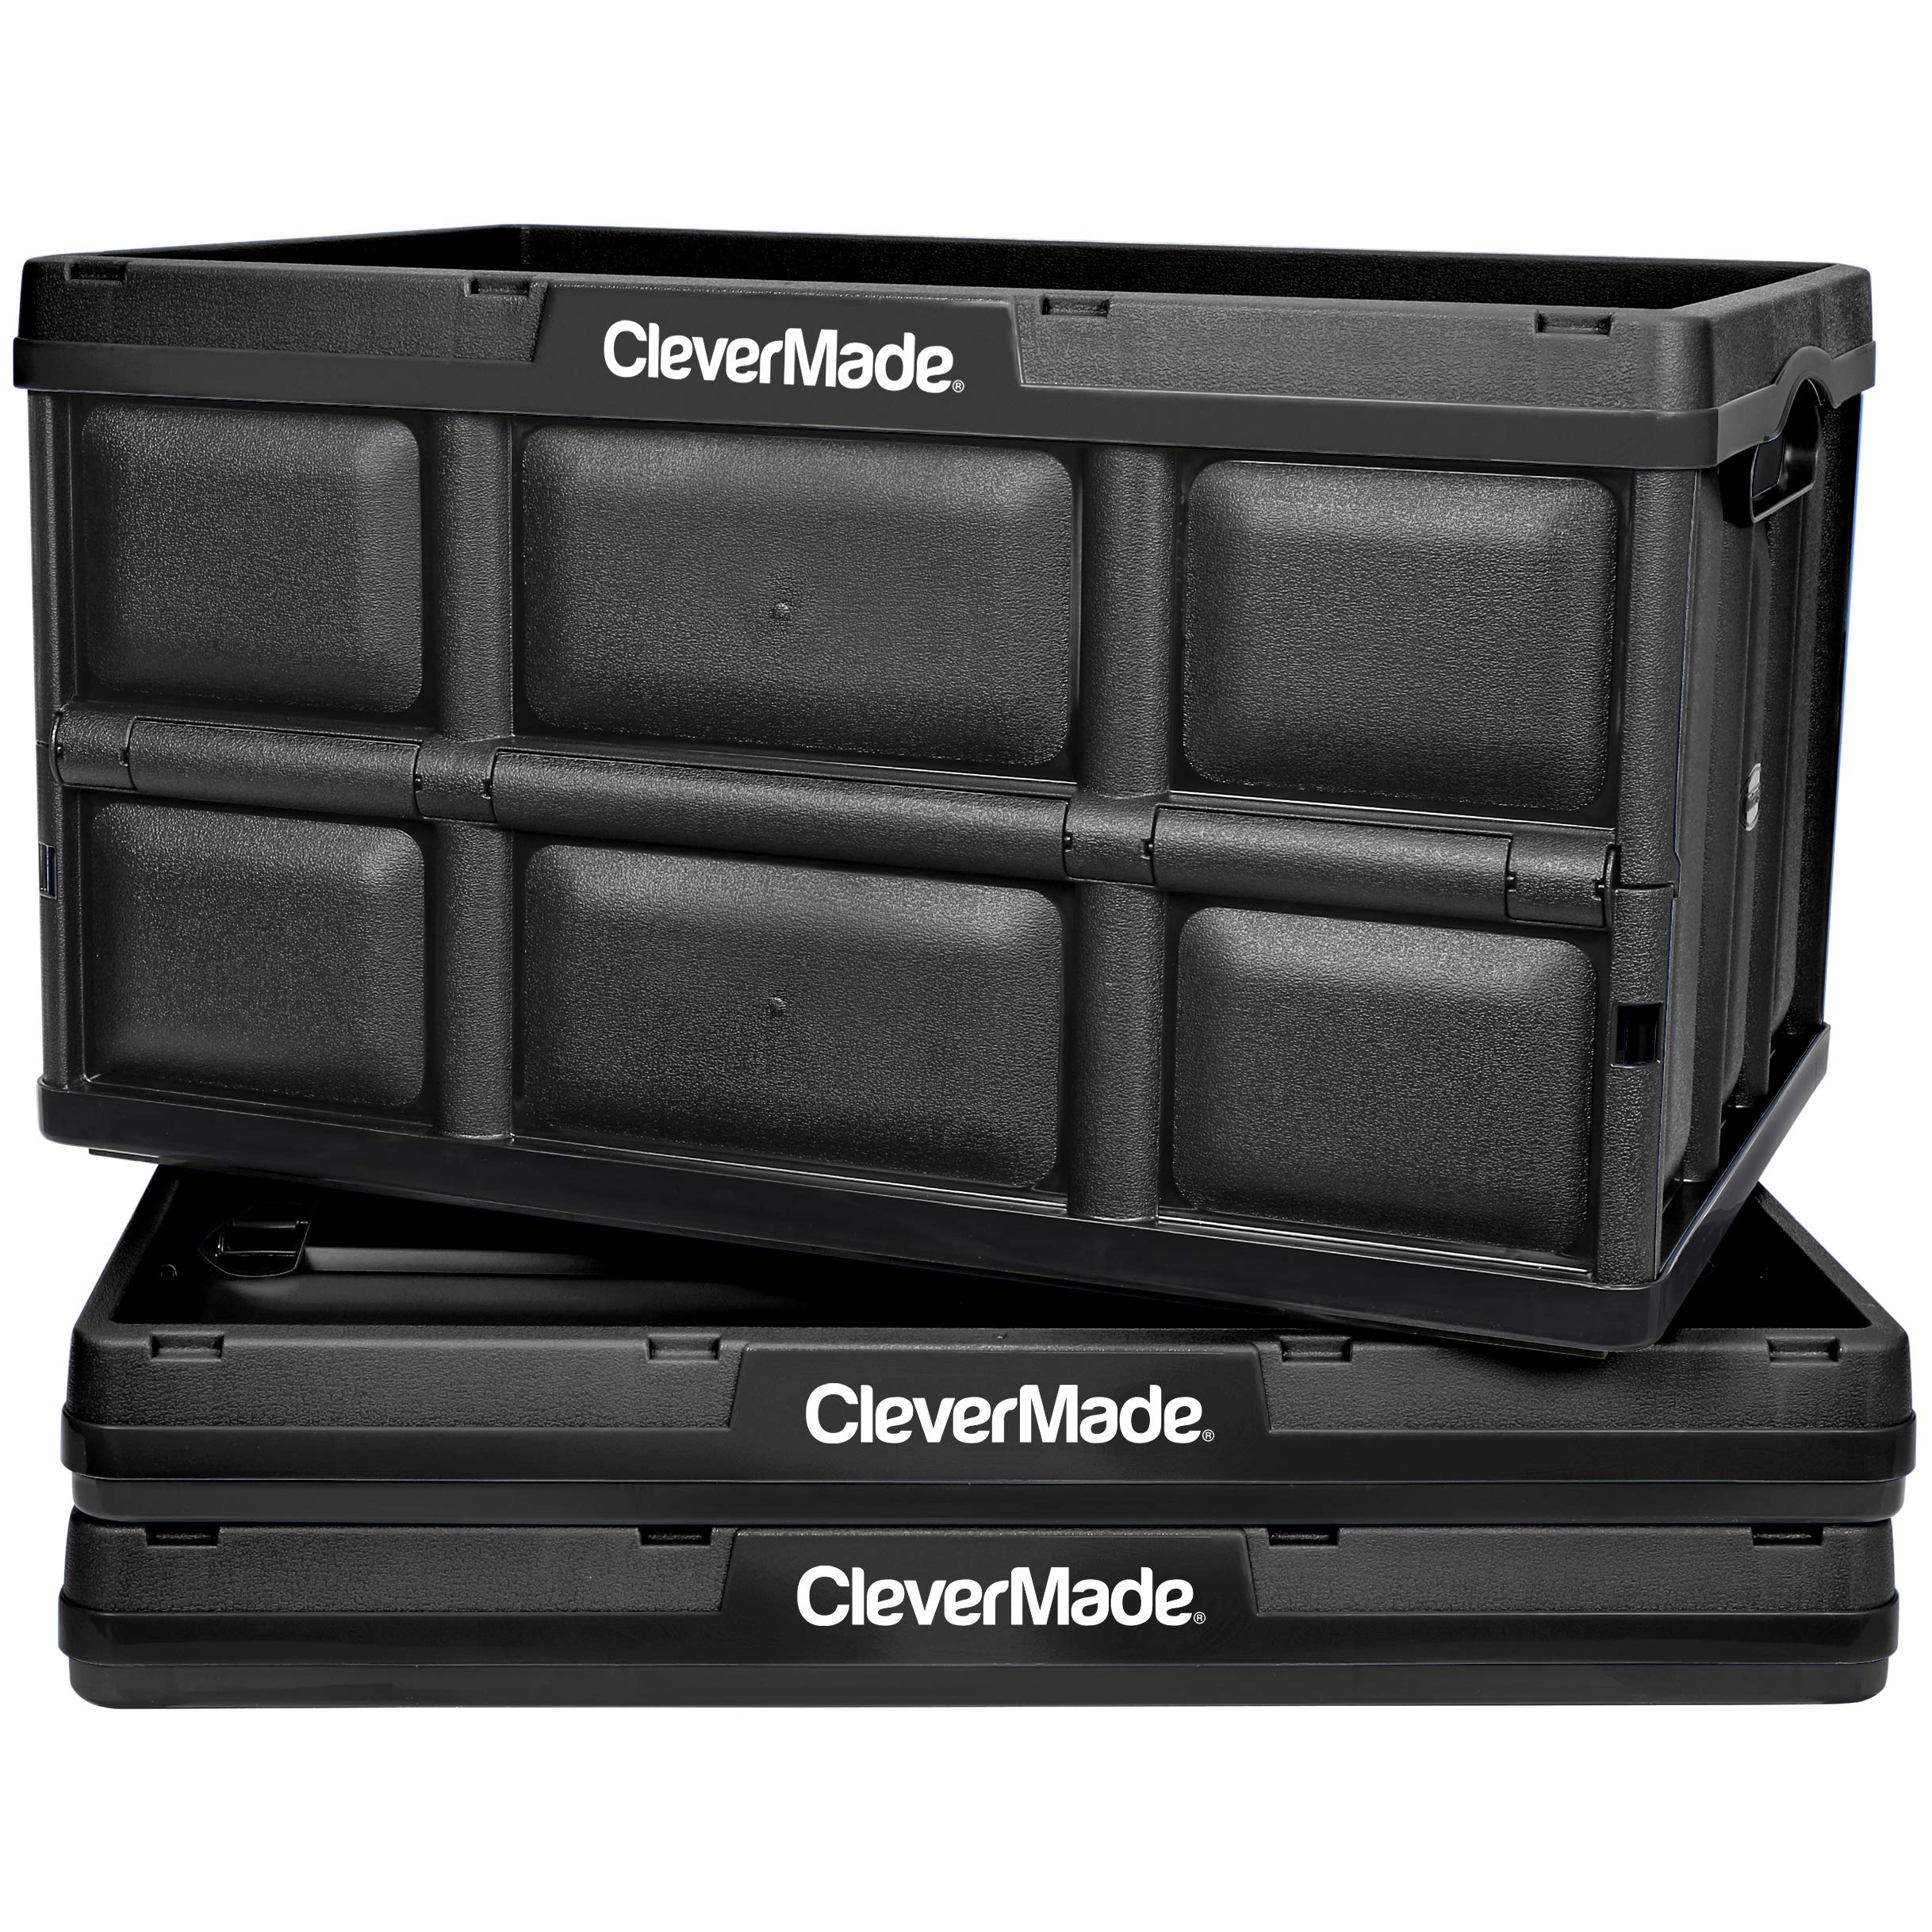 CleverMade 62L Collapsible Storage Bins